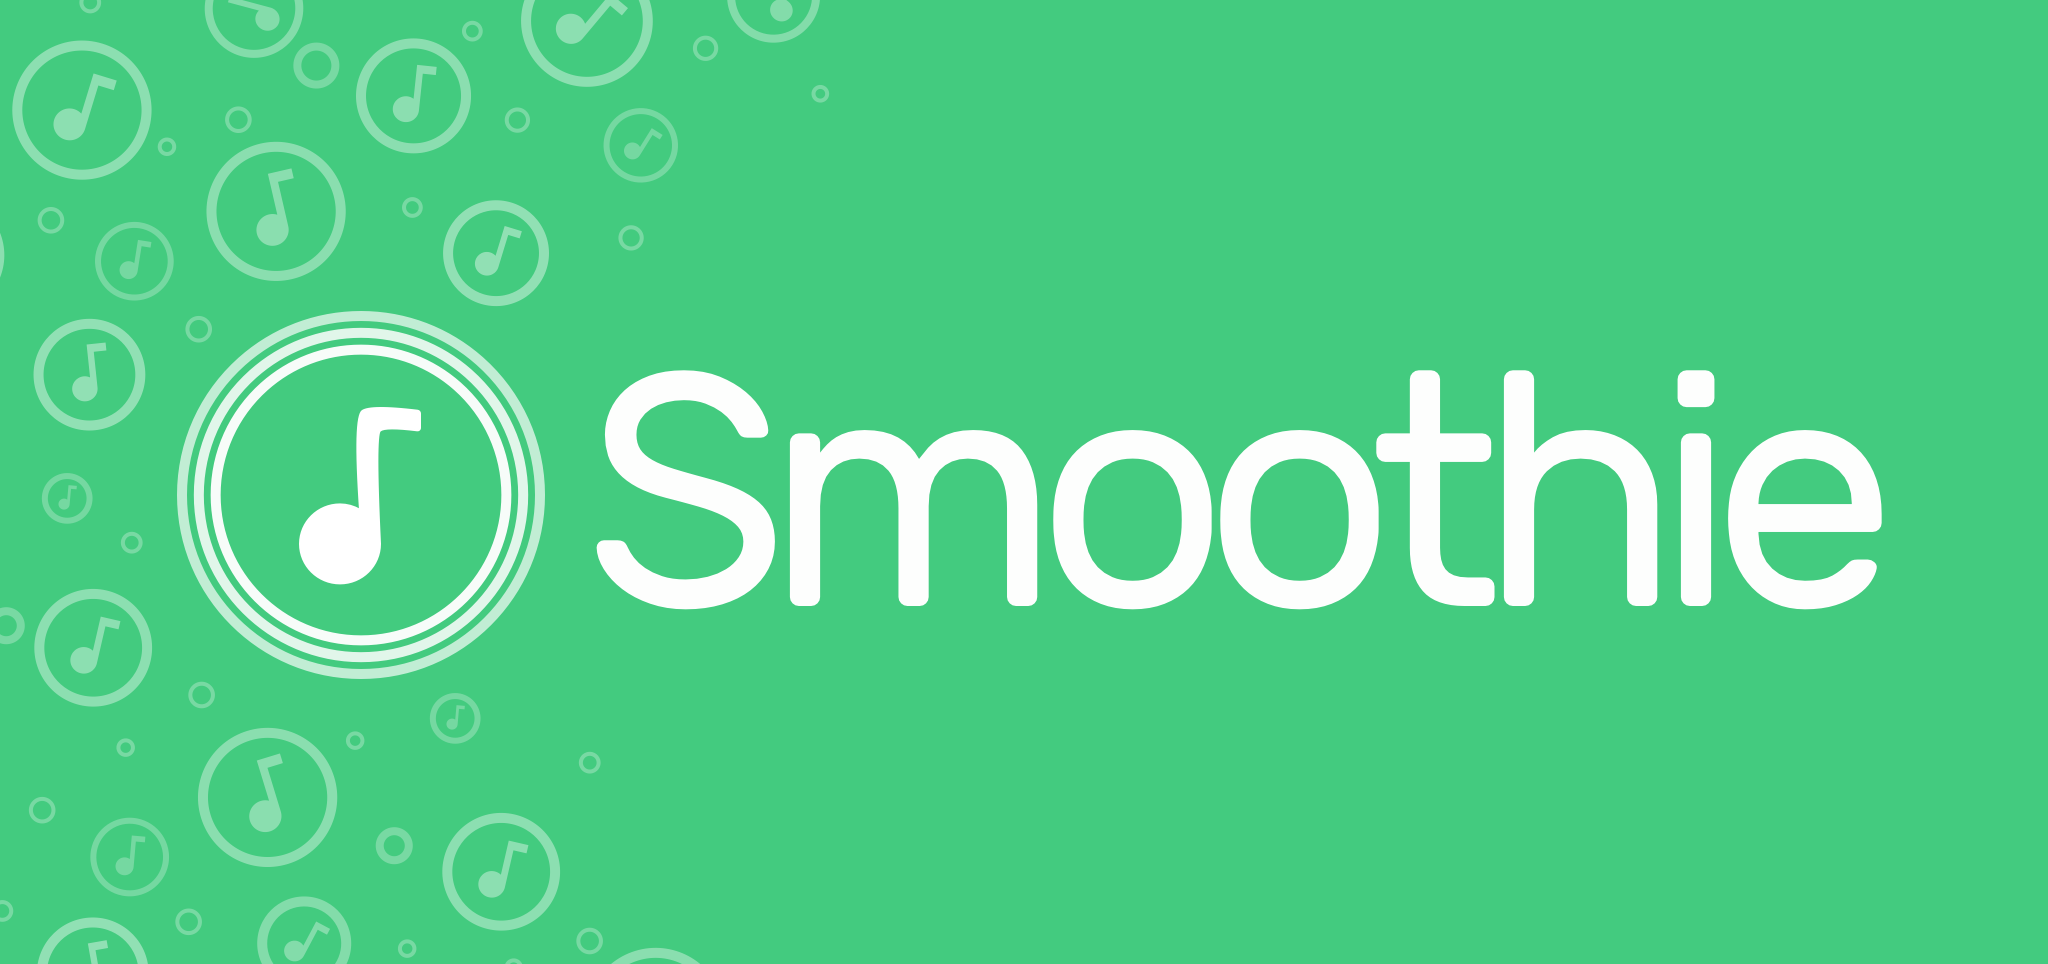 Smoothie header image